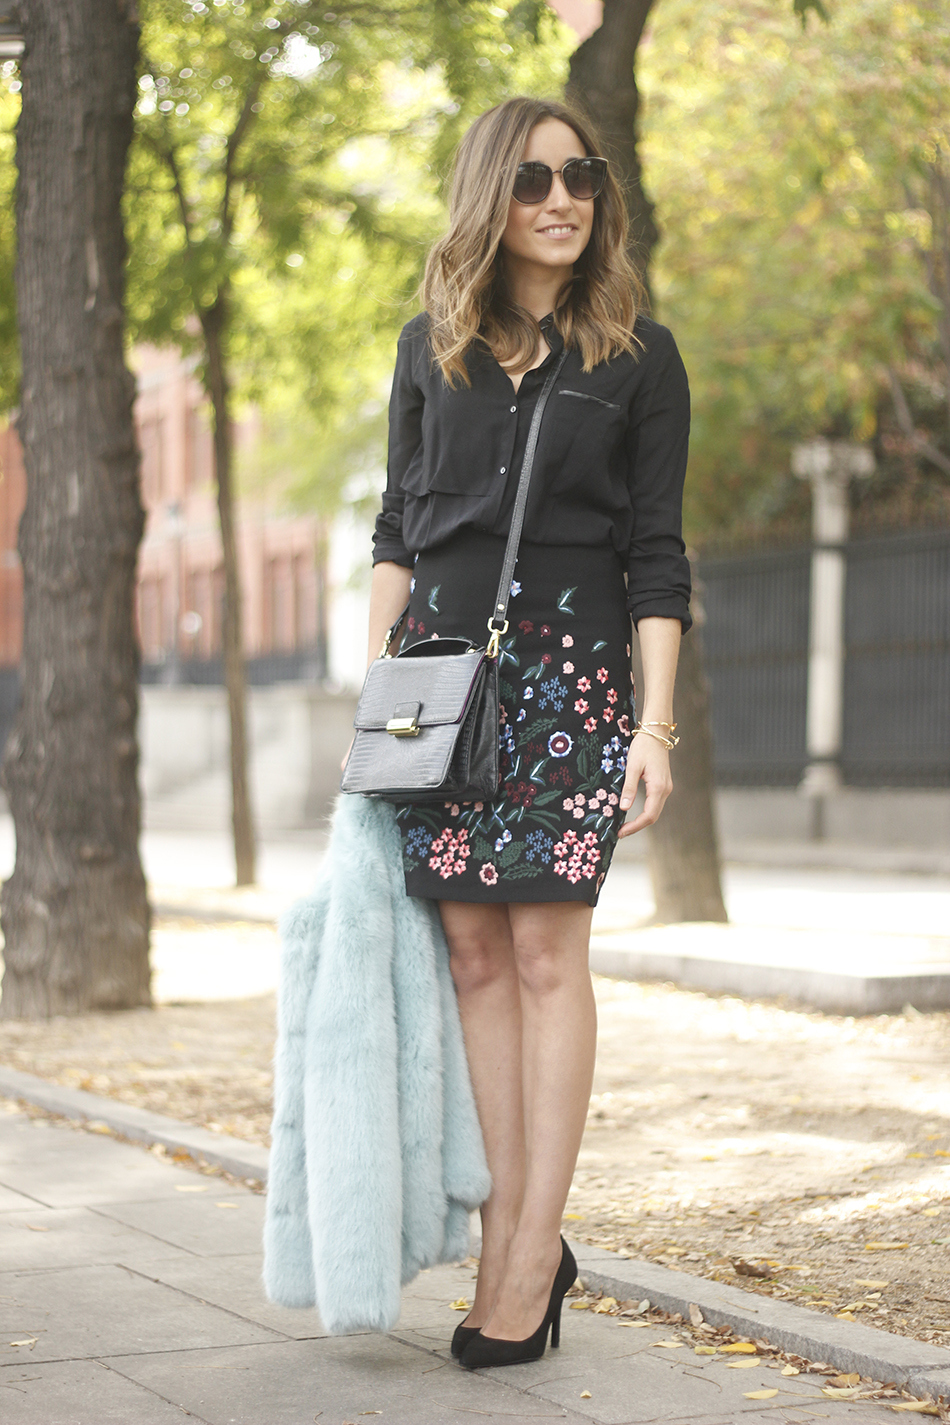 black skirt with flowers outfit06